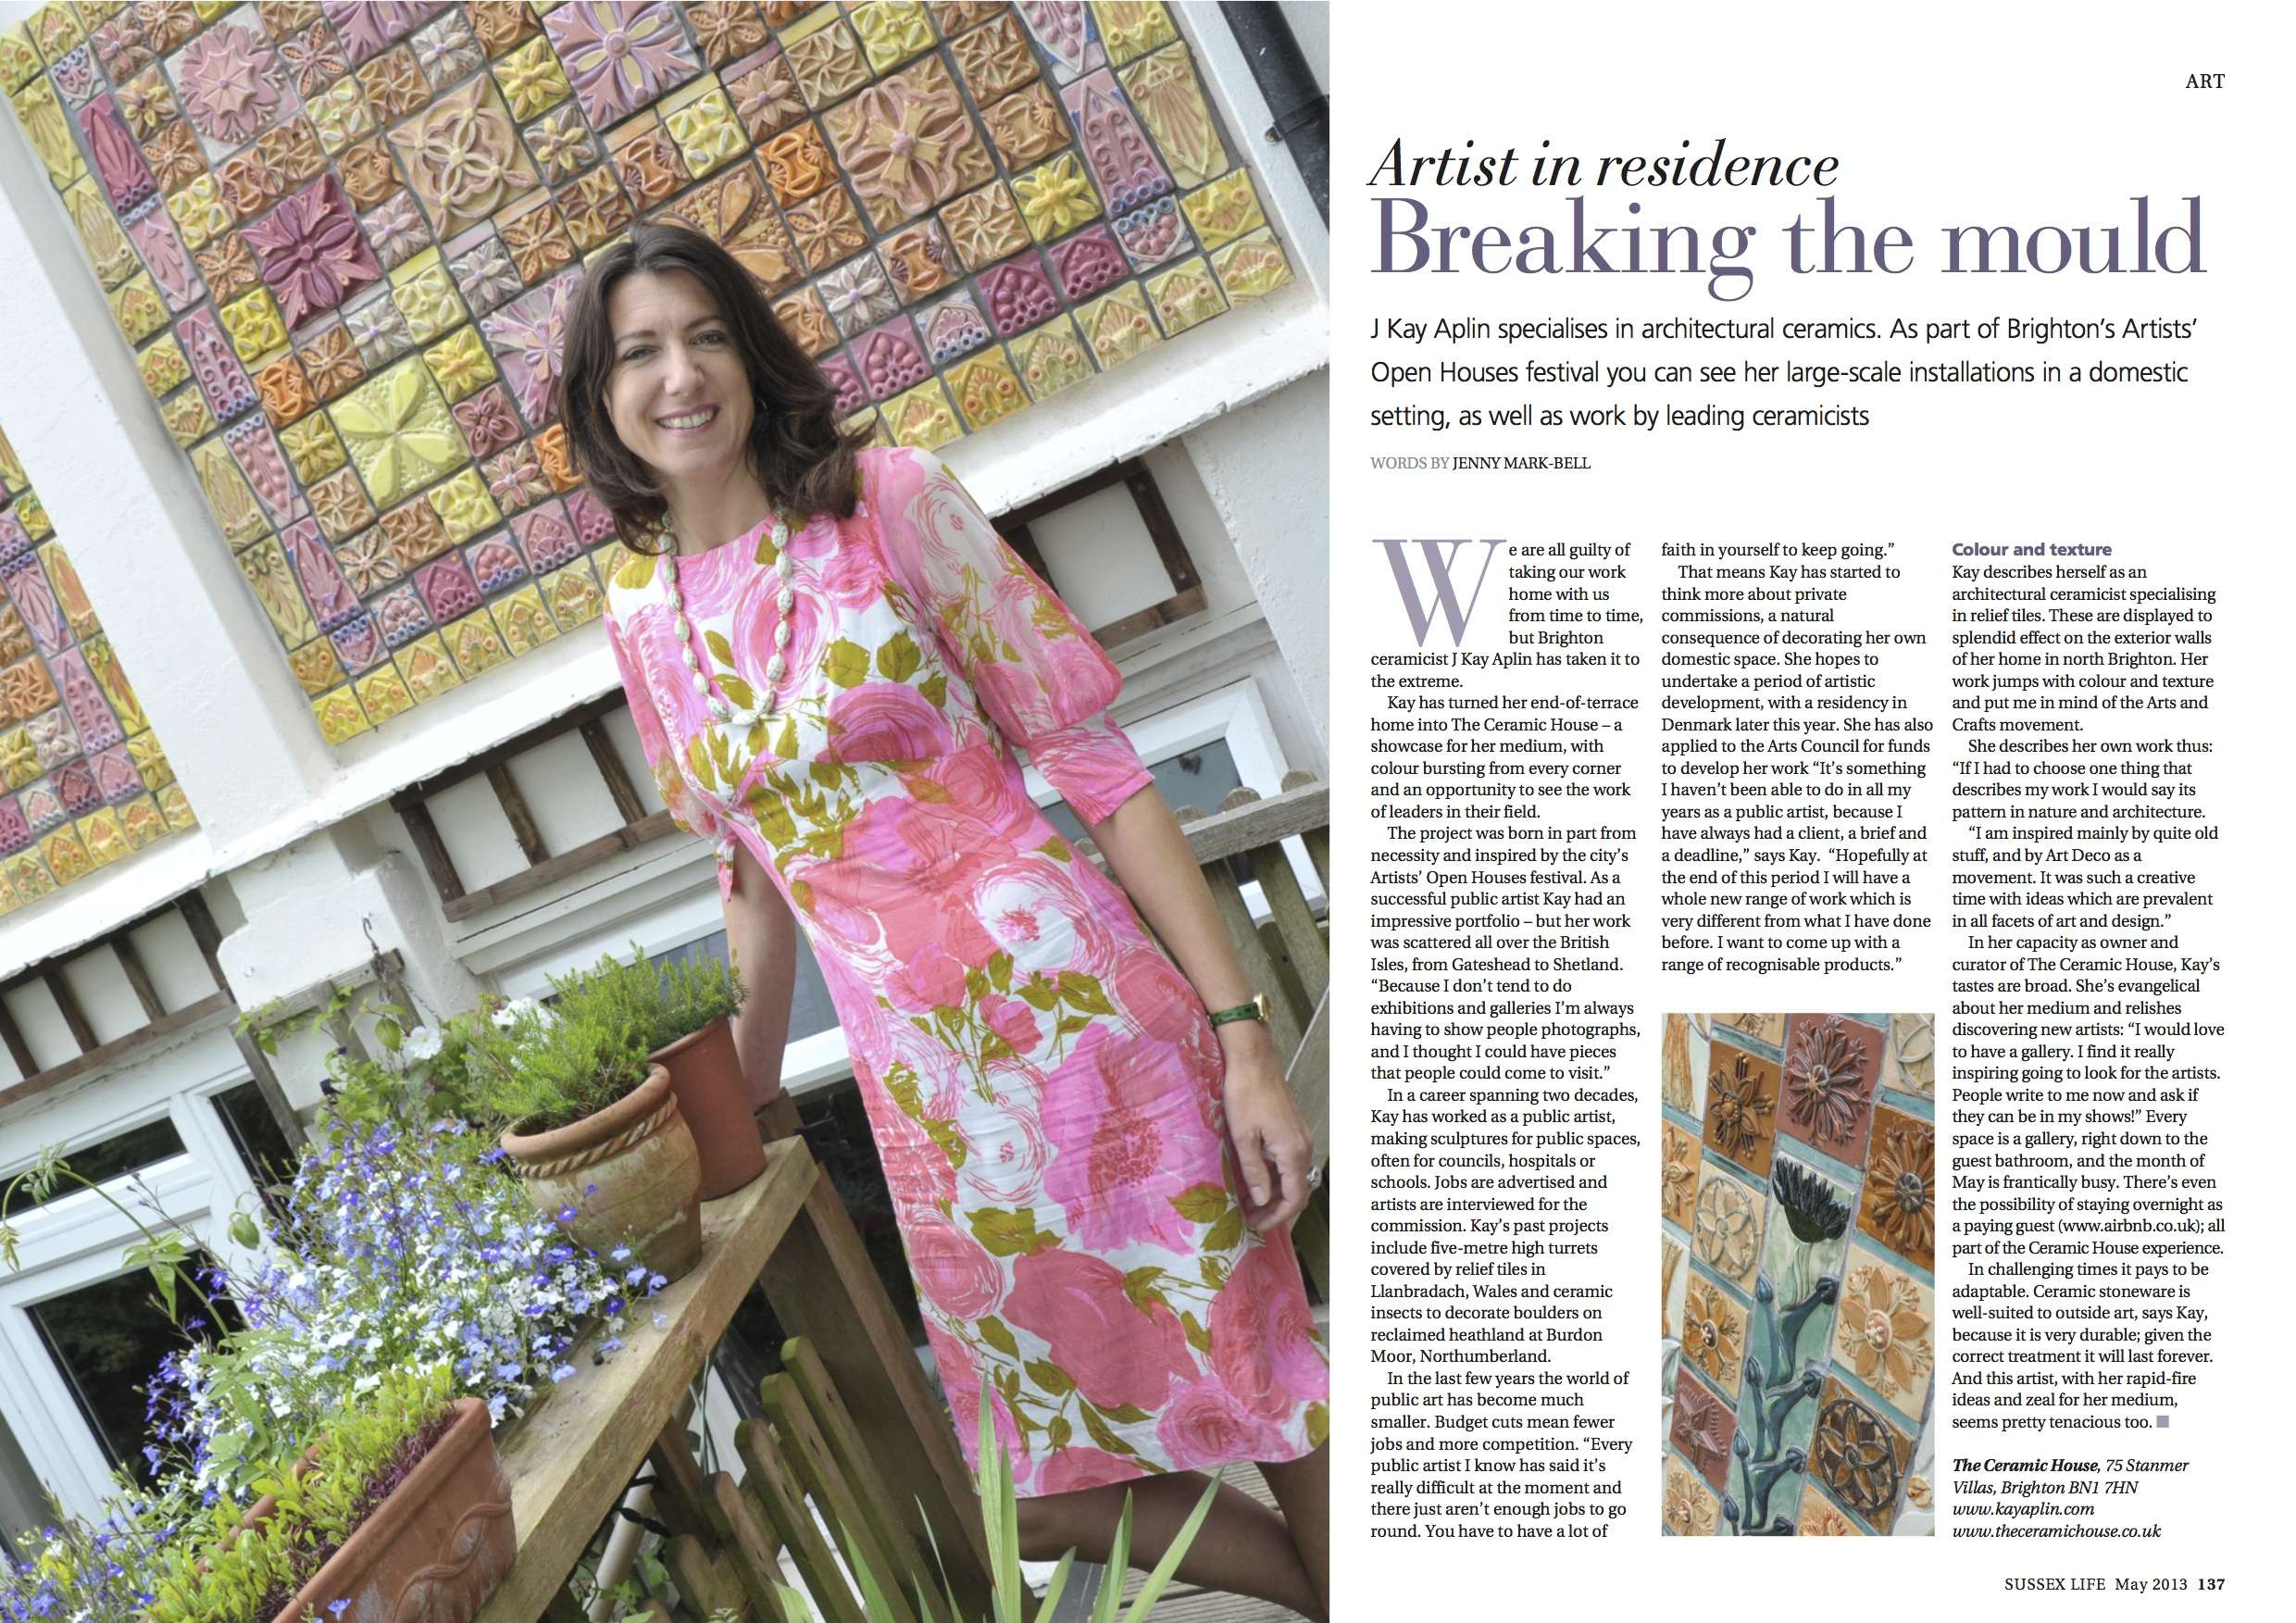 Sussex Life article 2013